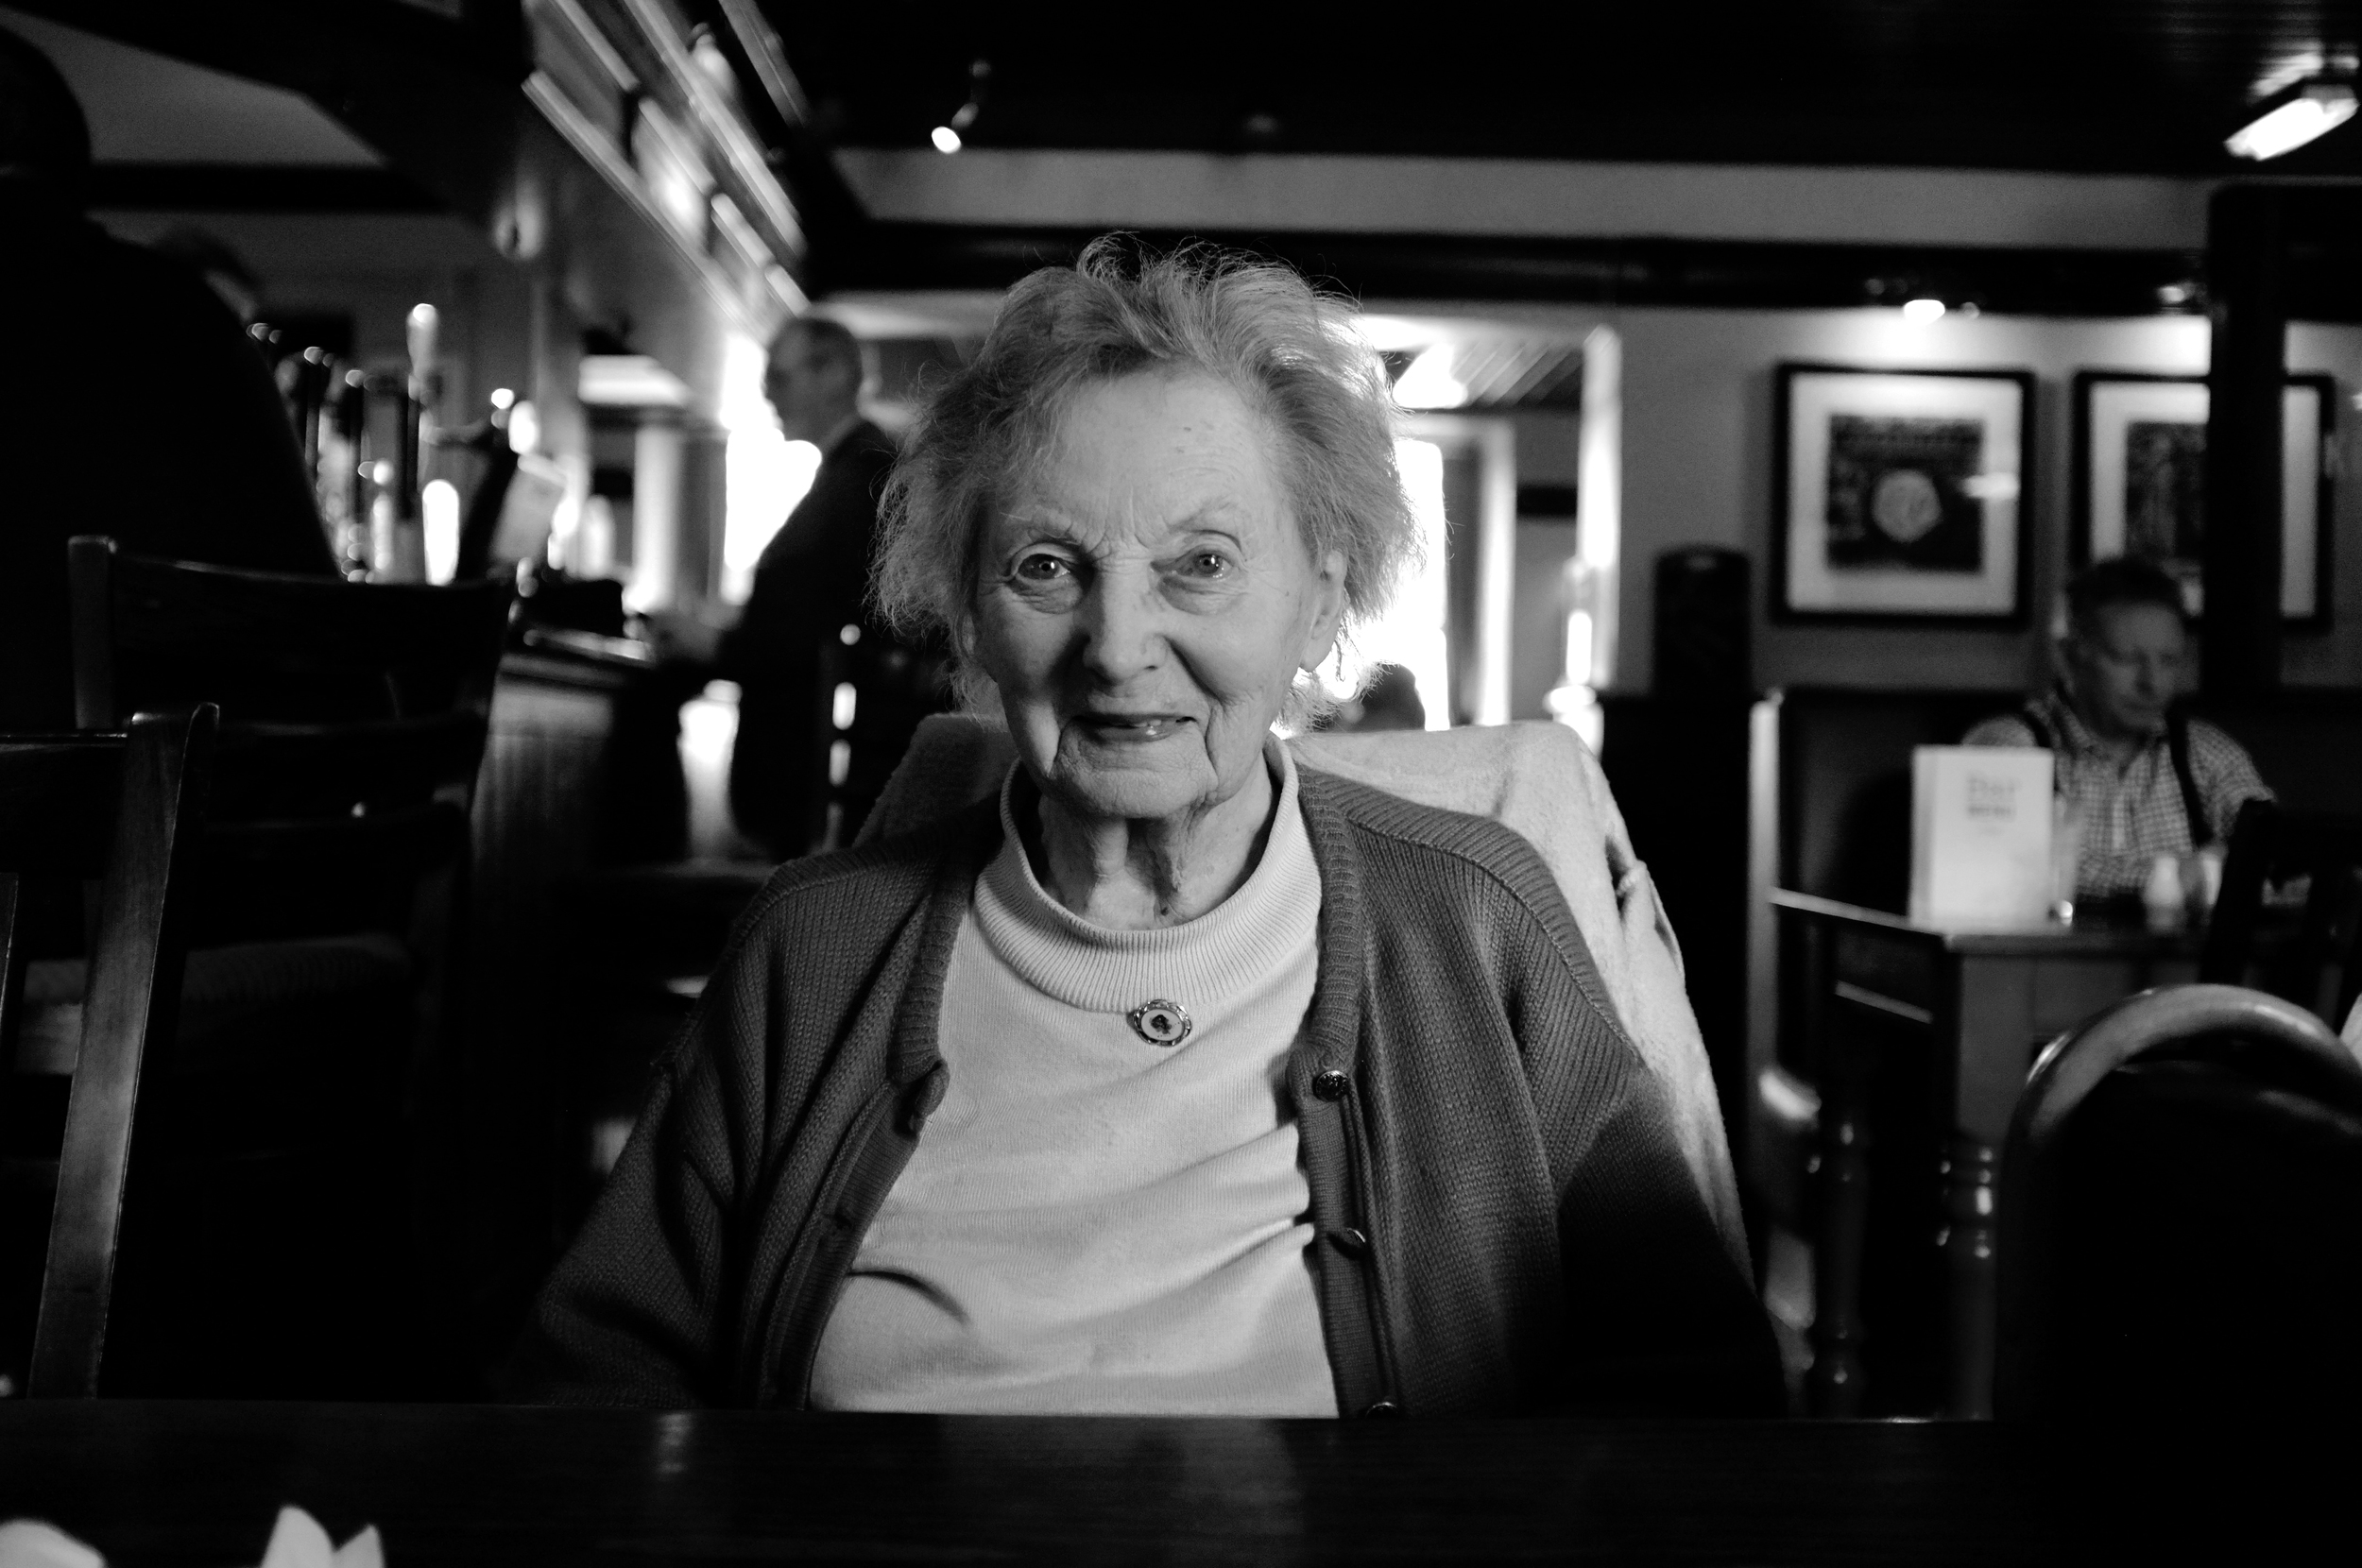 """Taken from the last day I spent with my Grannie, April 2014. I love her mischievous smile, the one she would use when she cupped my face in her hands and say """"oh hello my little lamb!"""""""